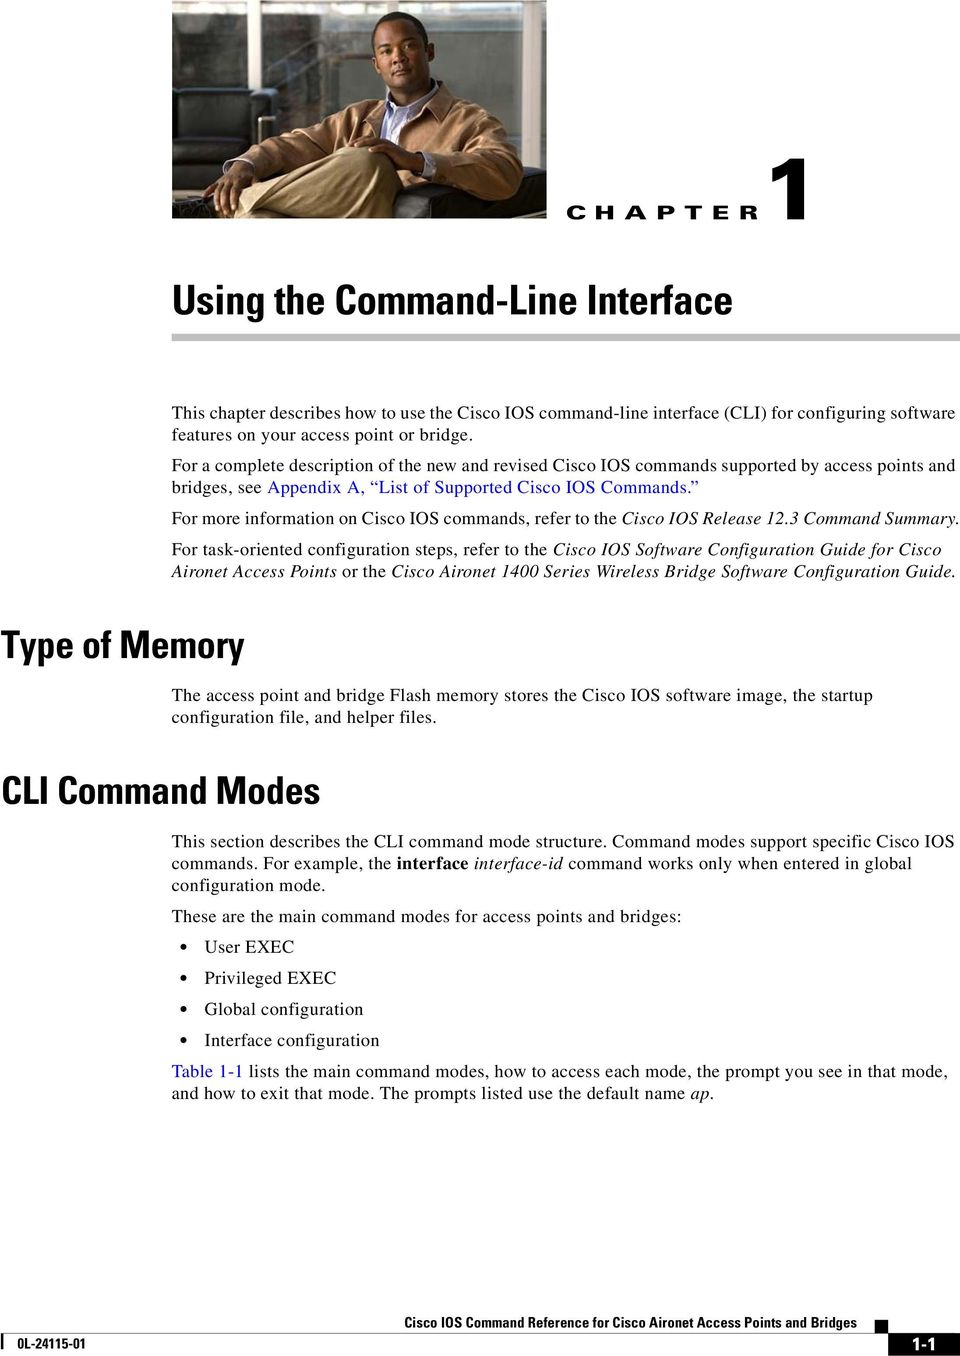 Cisco IOS Command Reference for Cisco Aironet Access Points